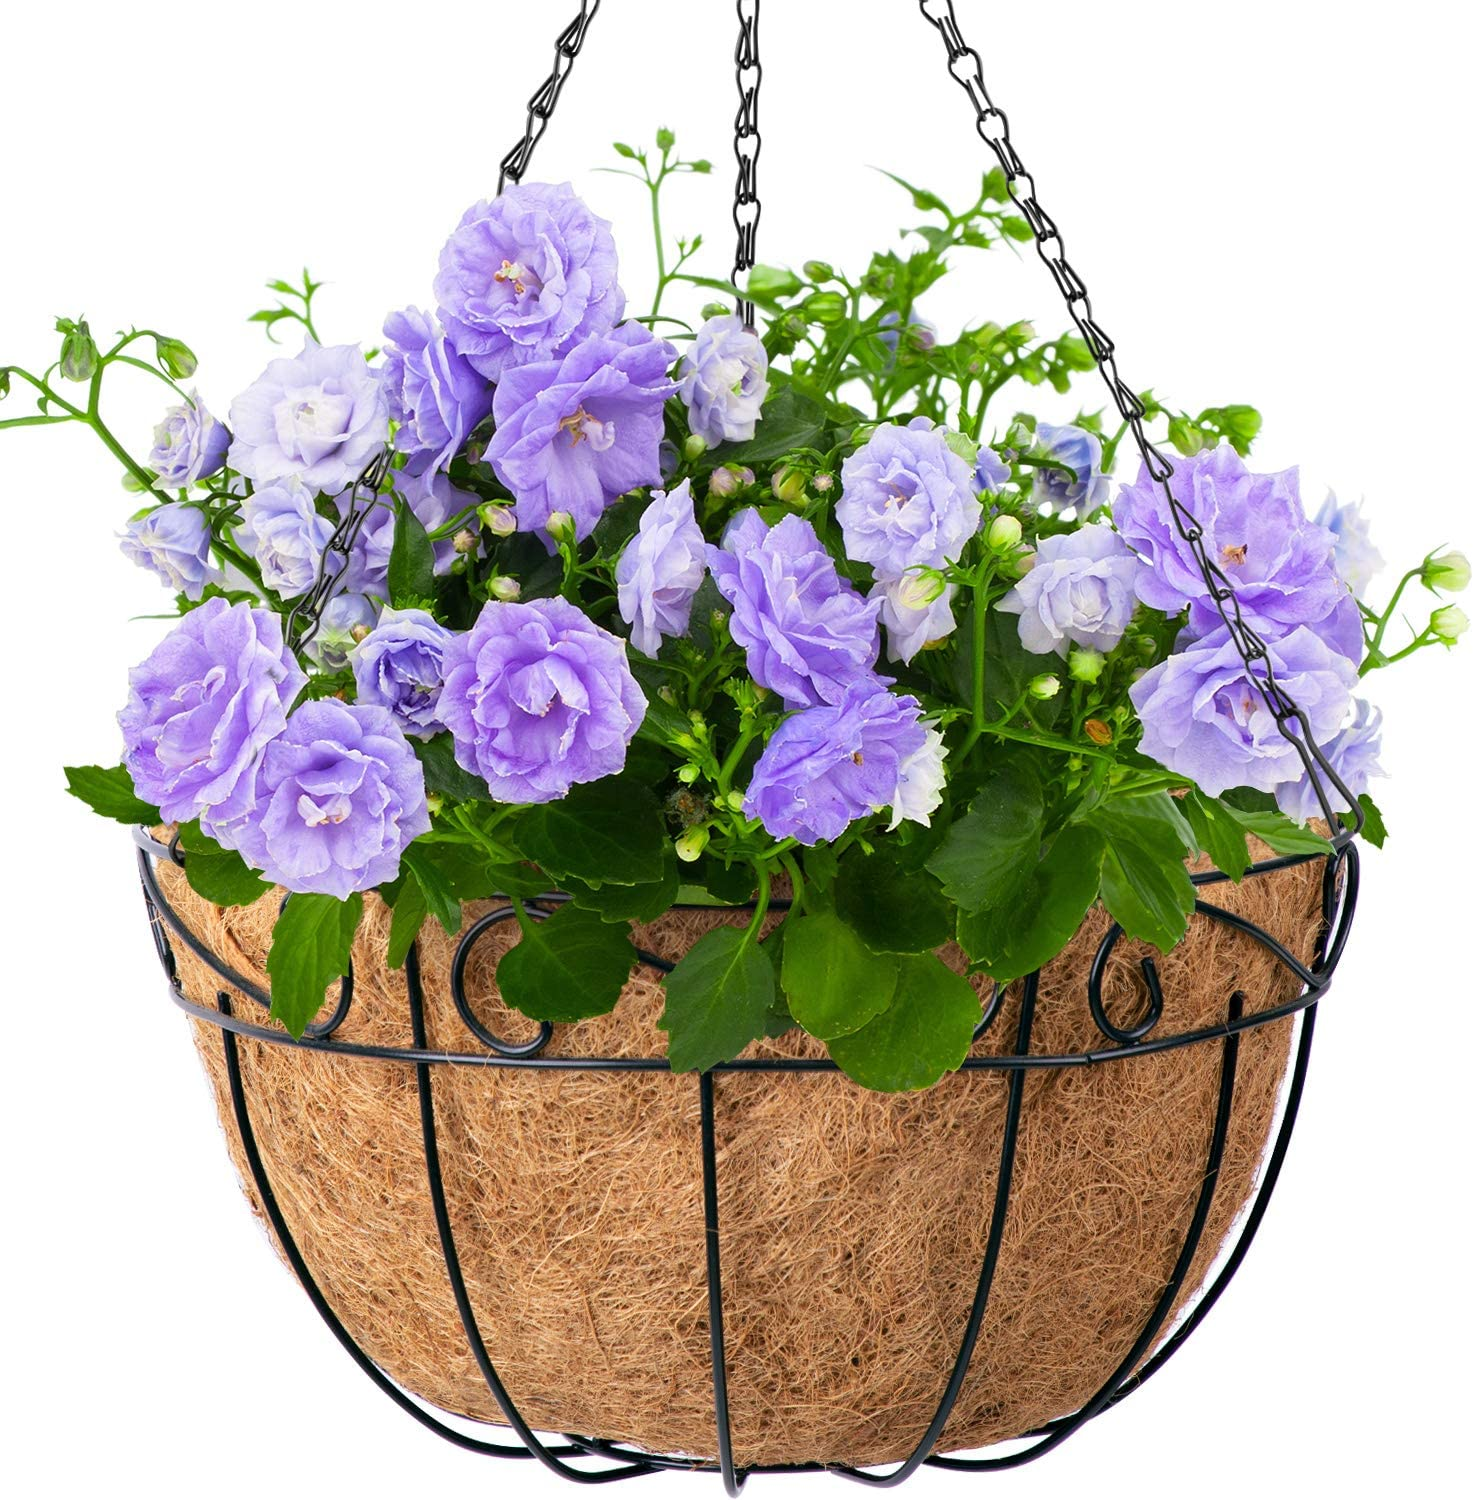 4 Pack Metal Hanging Planter Basket With Coco Coir Liner 14 Inch Round Wire Plant Holder With Chain Porch Decor Flower Pots Hanger Garden Decoration Indoor Outdoor Watering Hanging Baskets Amazon Co Uk Kitchen